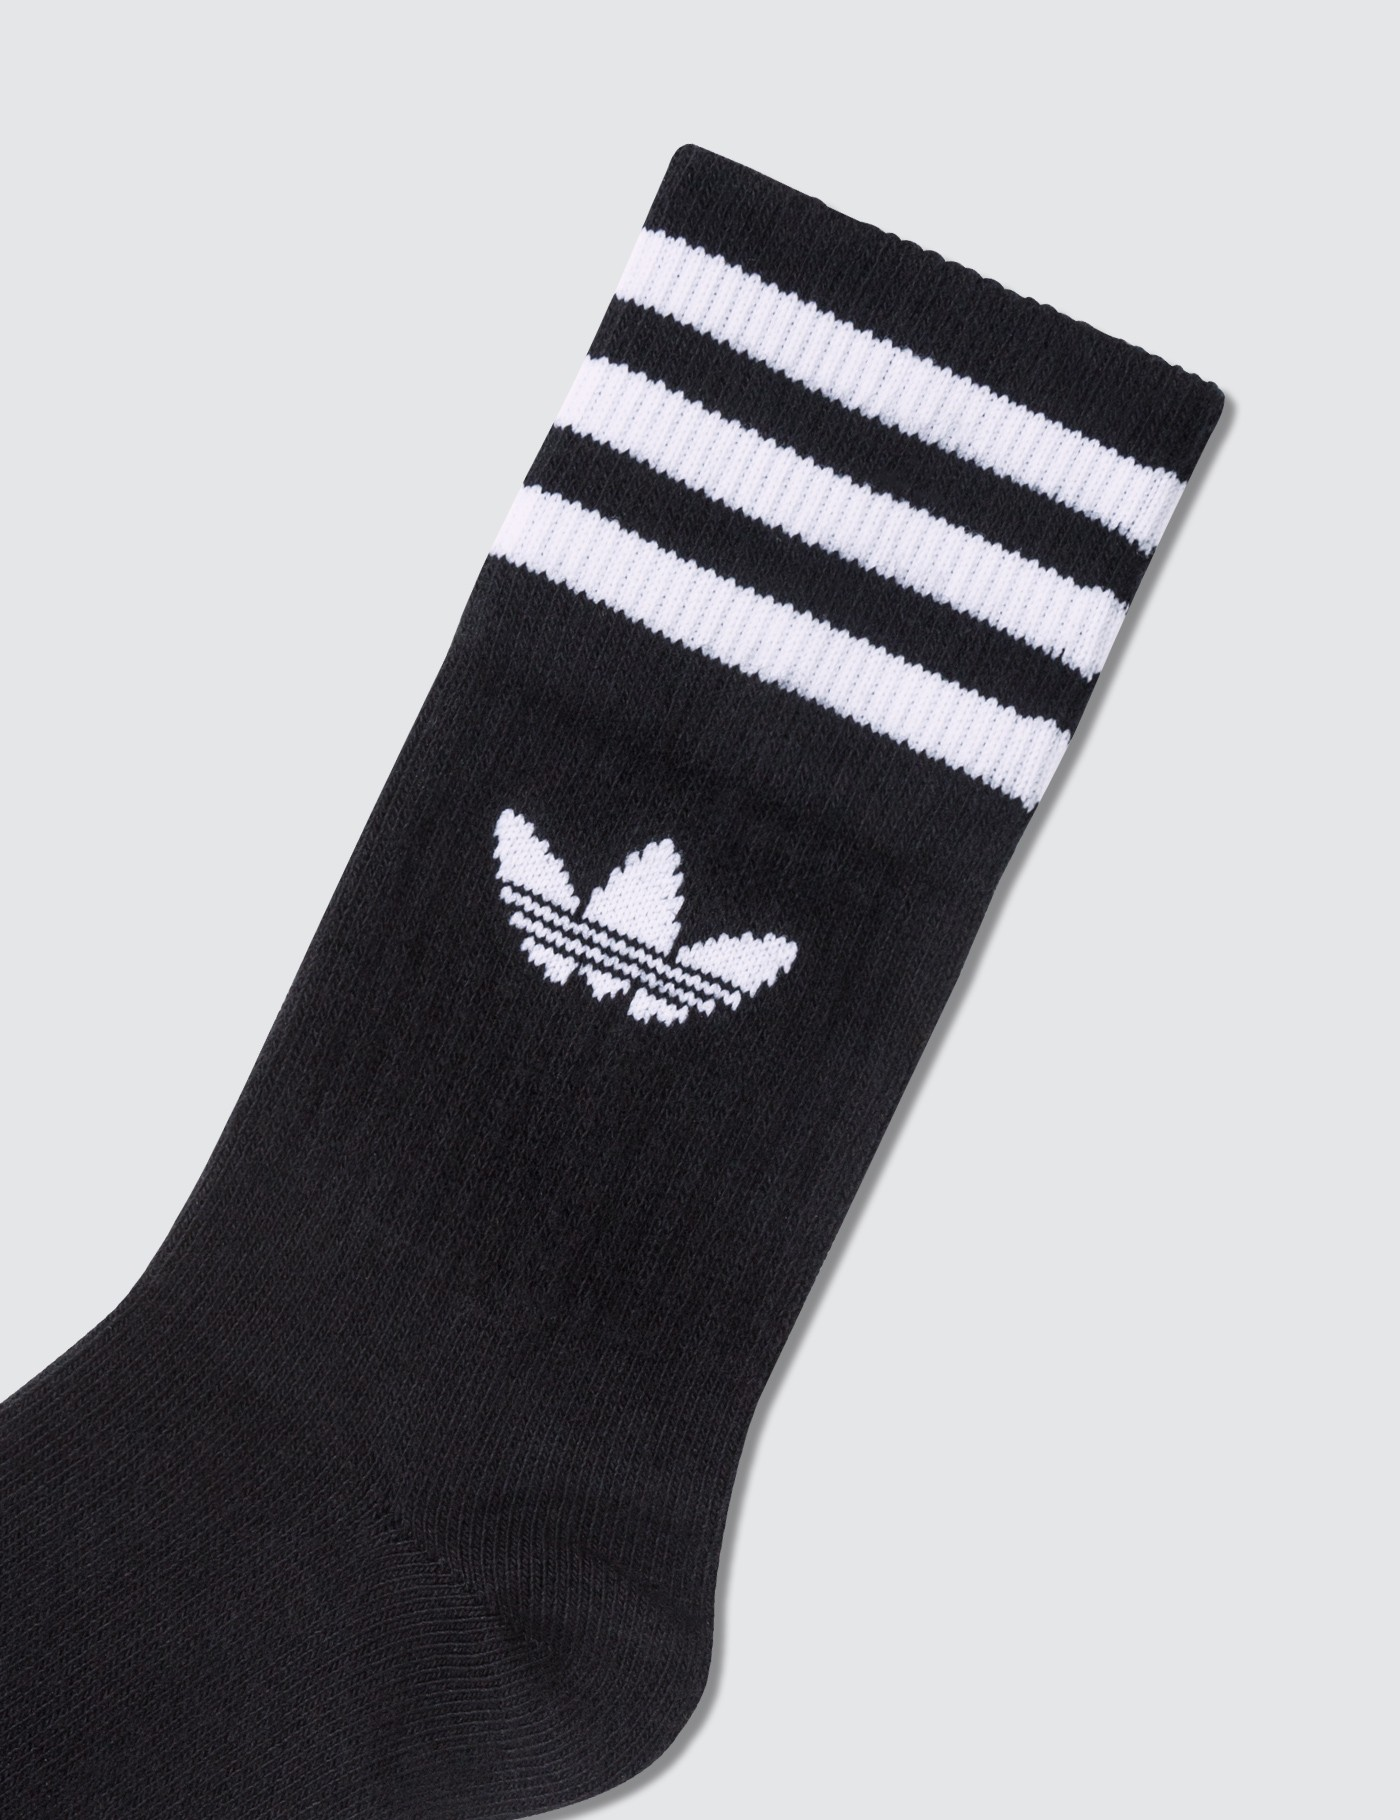 Adidas Originals Mid Cut Crew Socks